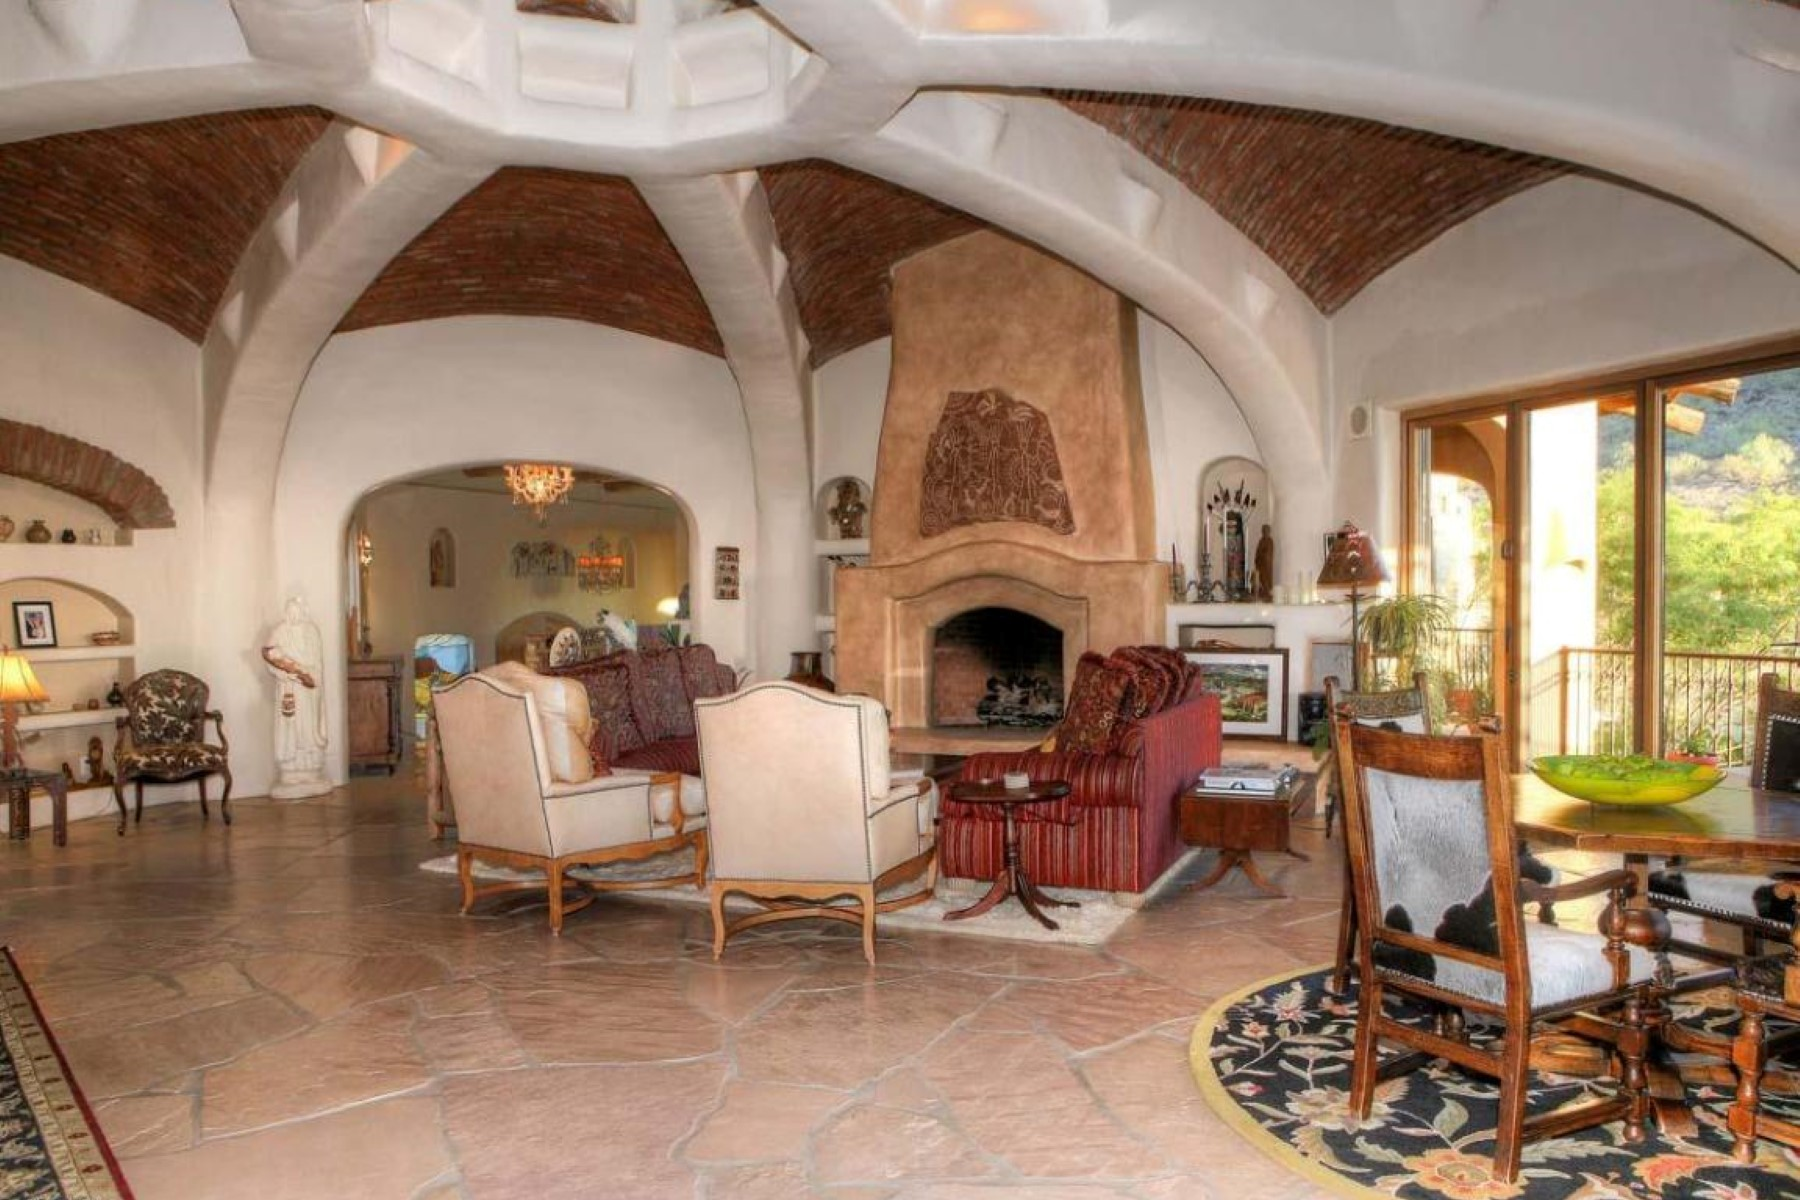 Property For Sale at Beautiful Santa Fe home in Pinnacle Peak Heights